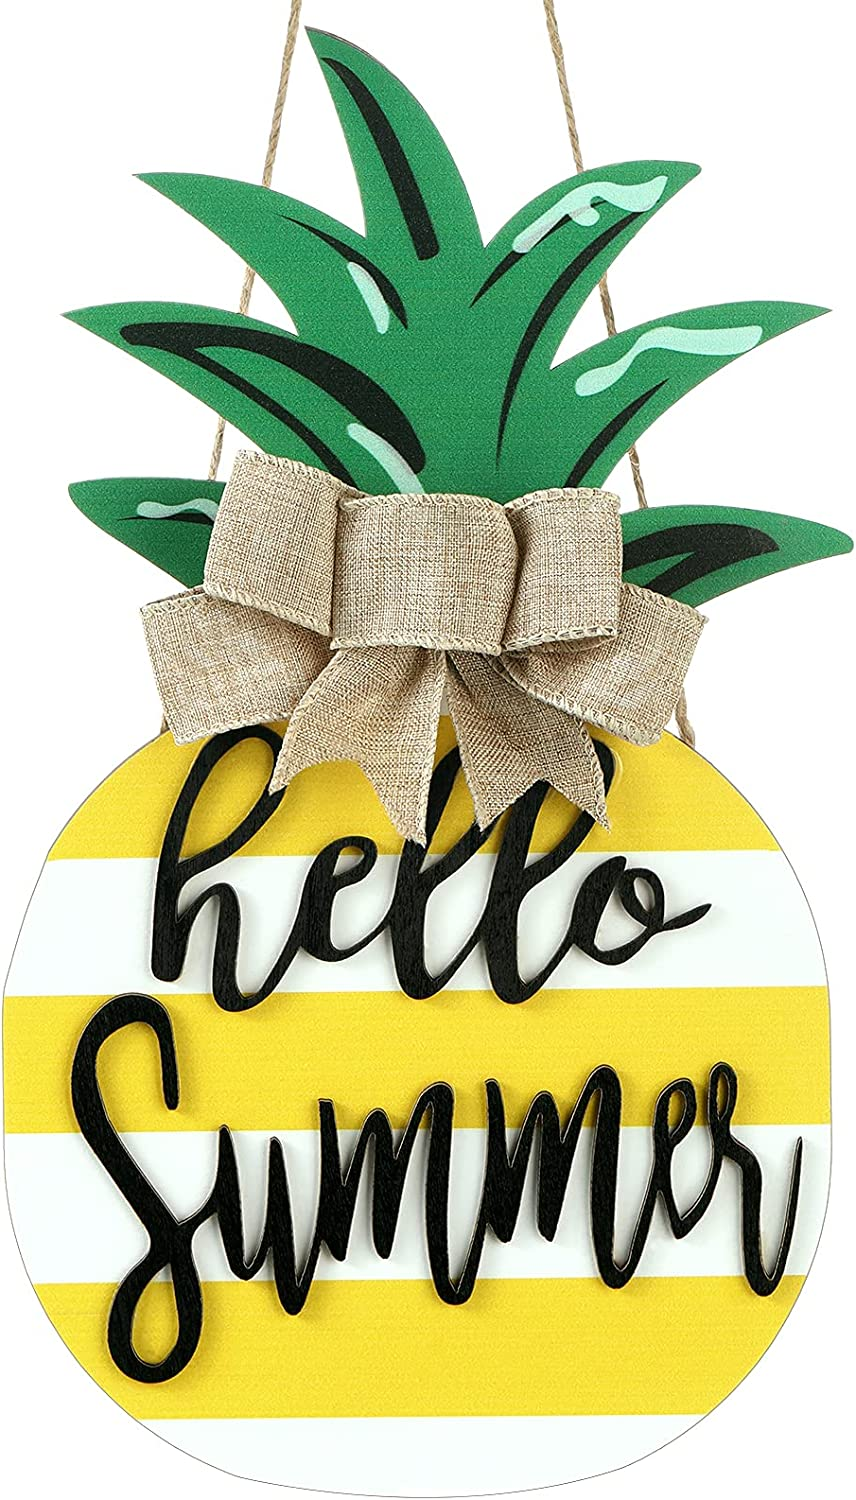 Jetec Pineapple Sign Wood Door Hanging, Rustic Hello Summer Plaque Porch Decor, Wooden Summer Sign Pineapple Shaped Wall Decor with Burlap Bow for Summer Home Farmhouse Porch Garden Yard